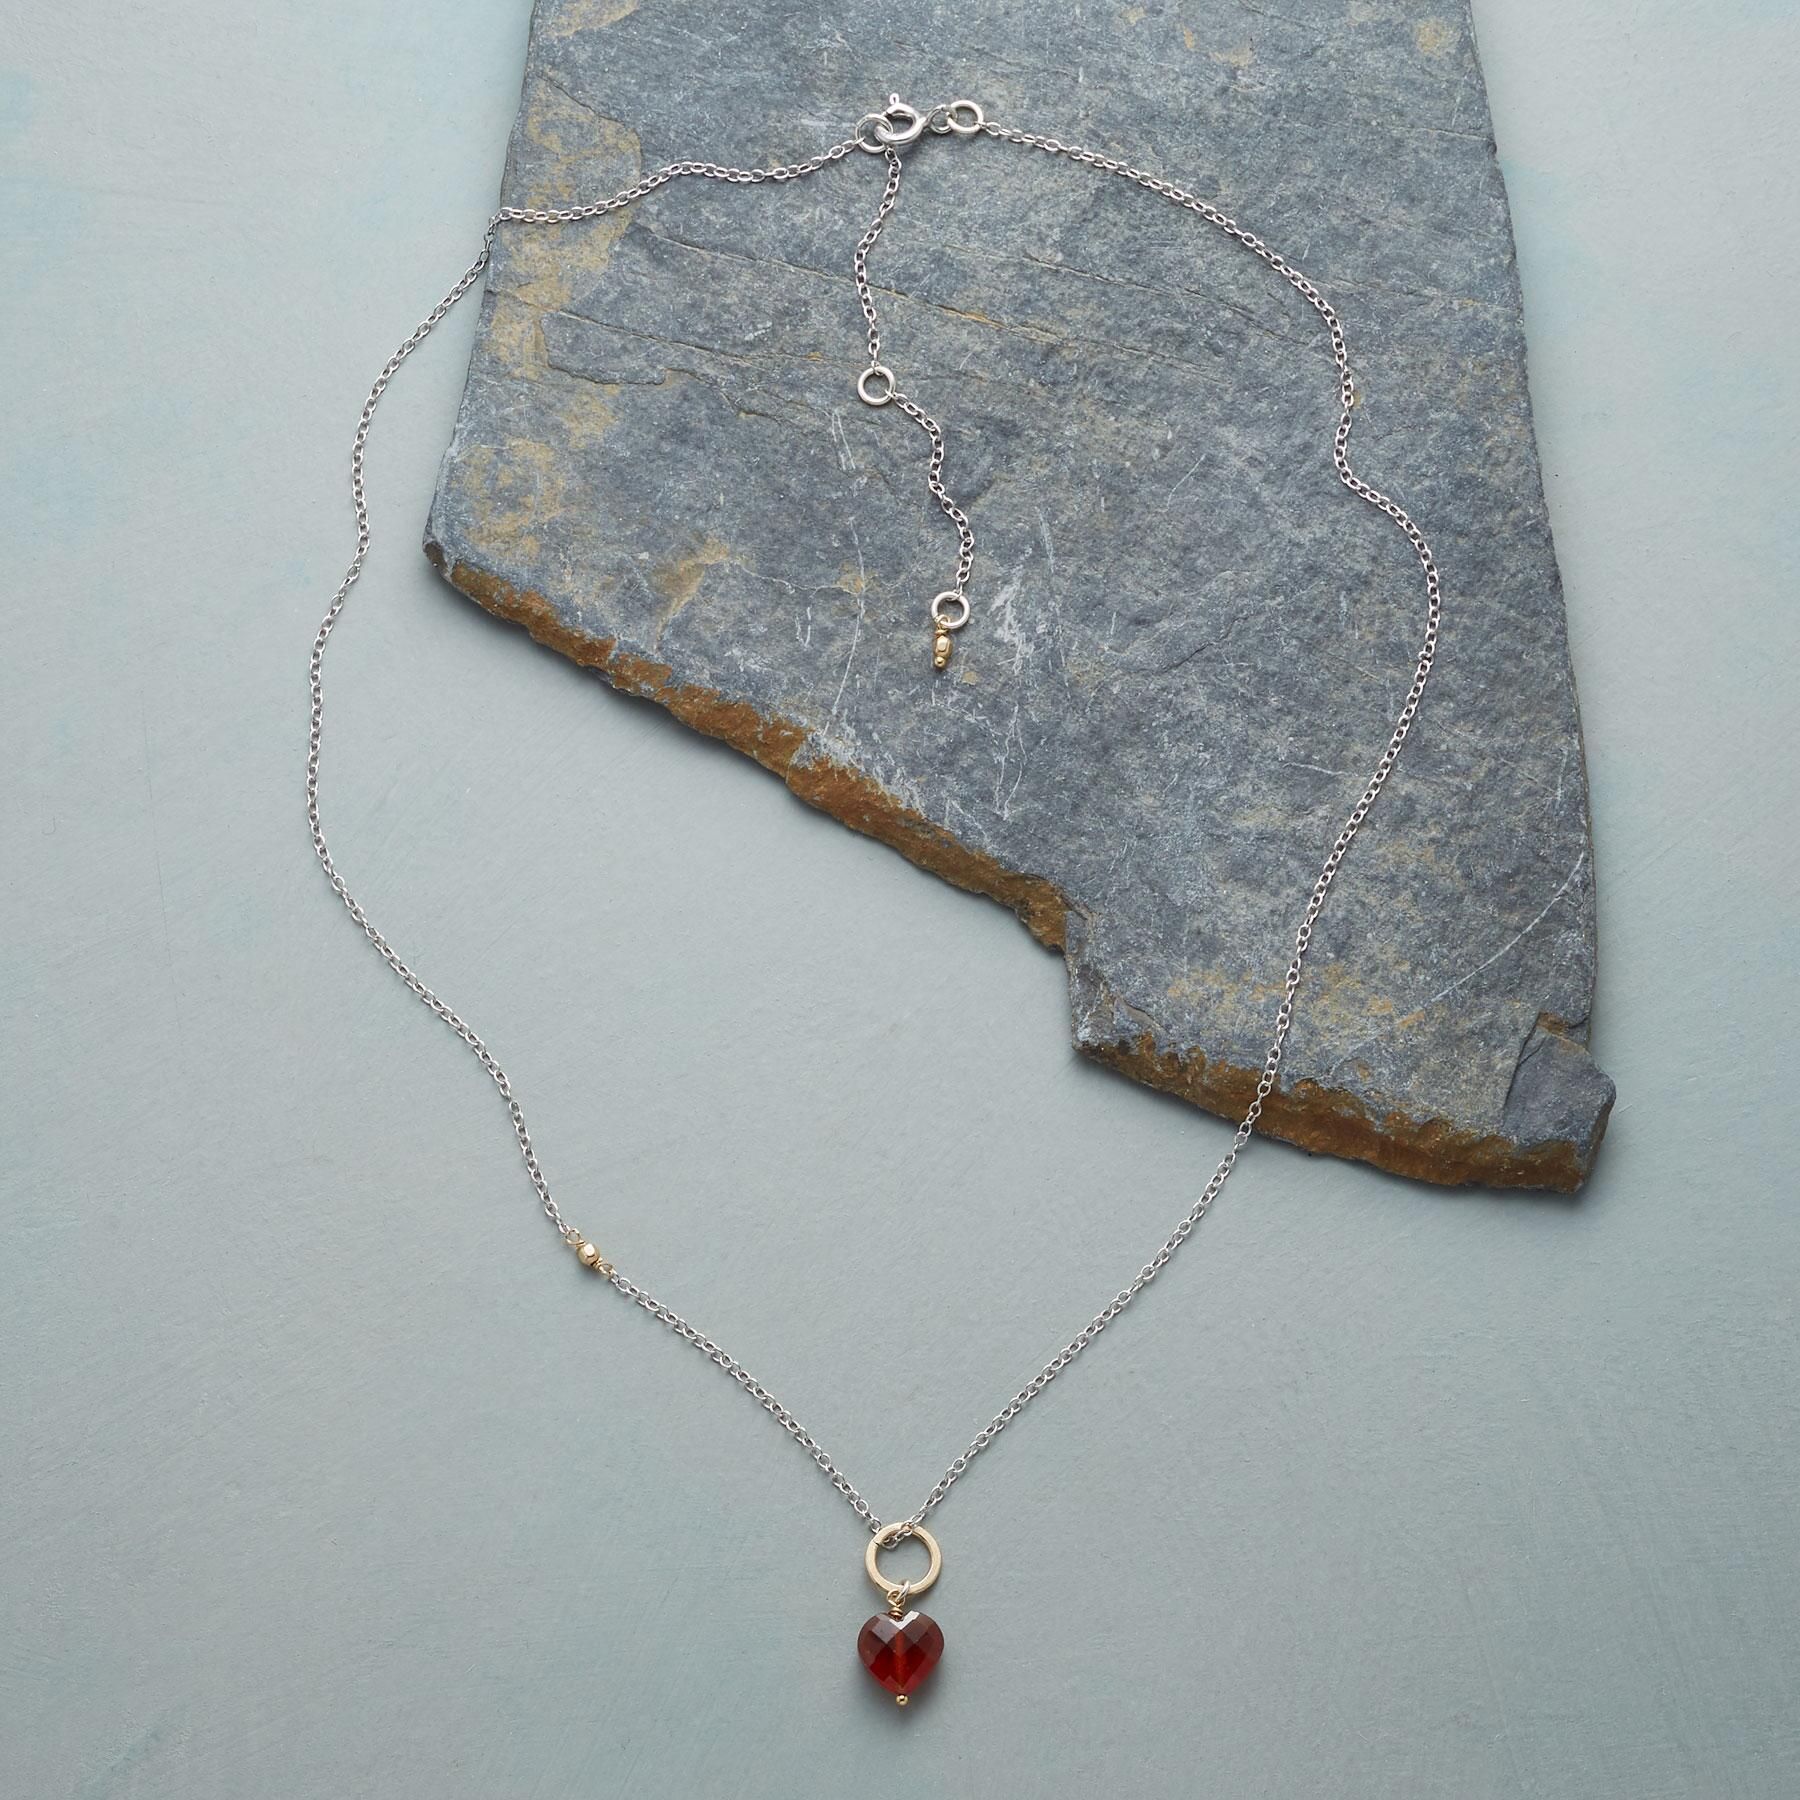 FAITHFUL HEART BIRTHSTONE NECKLACE: View 2